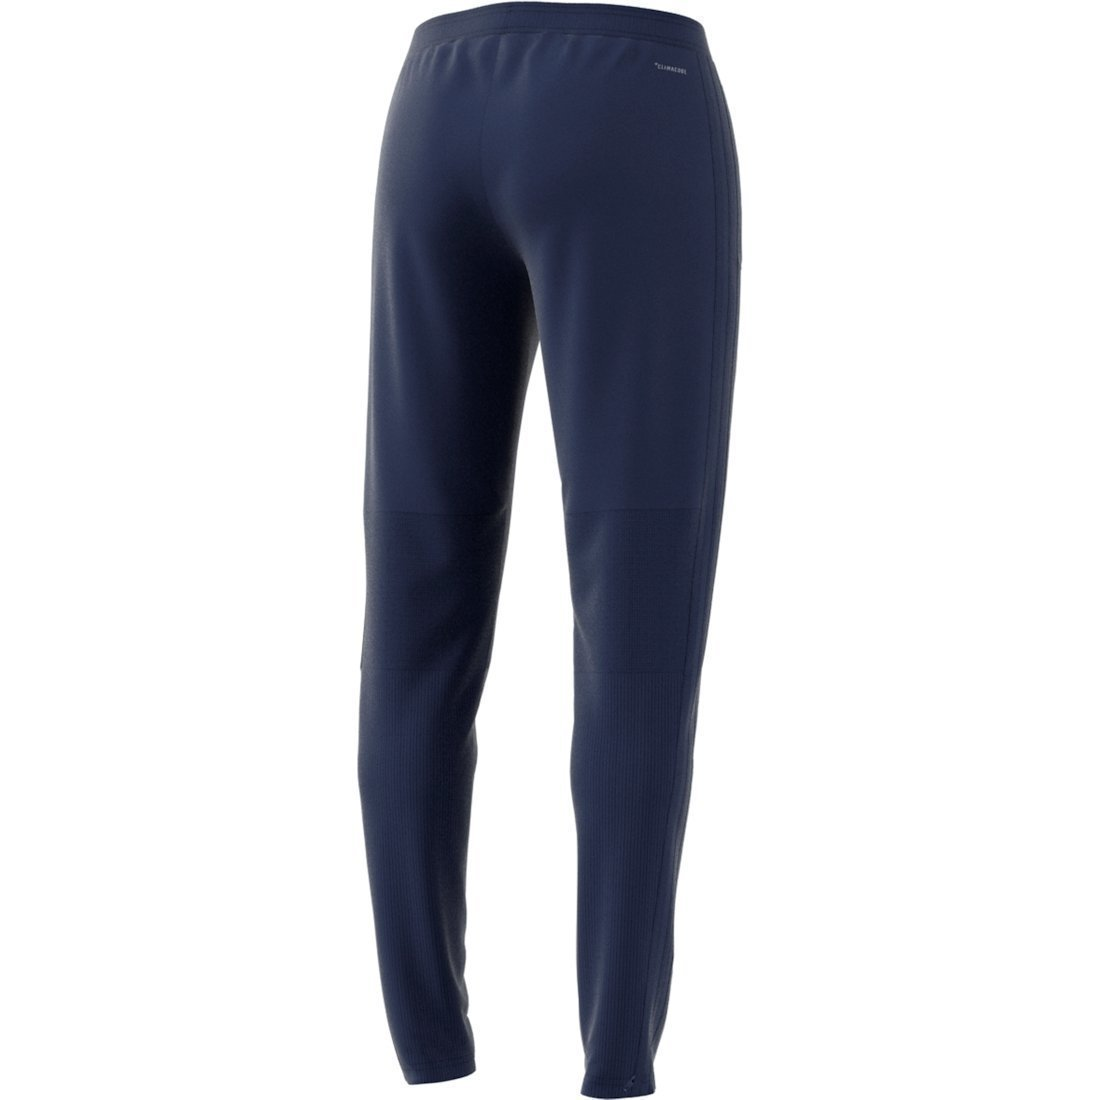 hot sales 6e86a 7a1df adidas Condivo 18 Training Pants - Womens